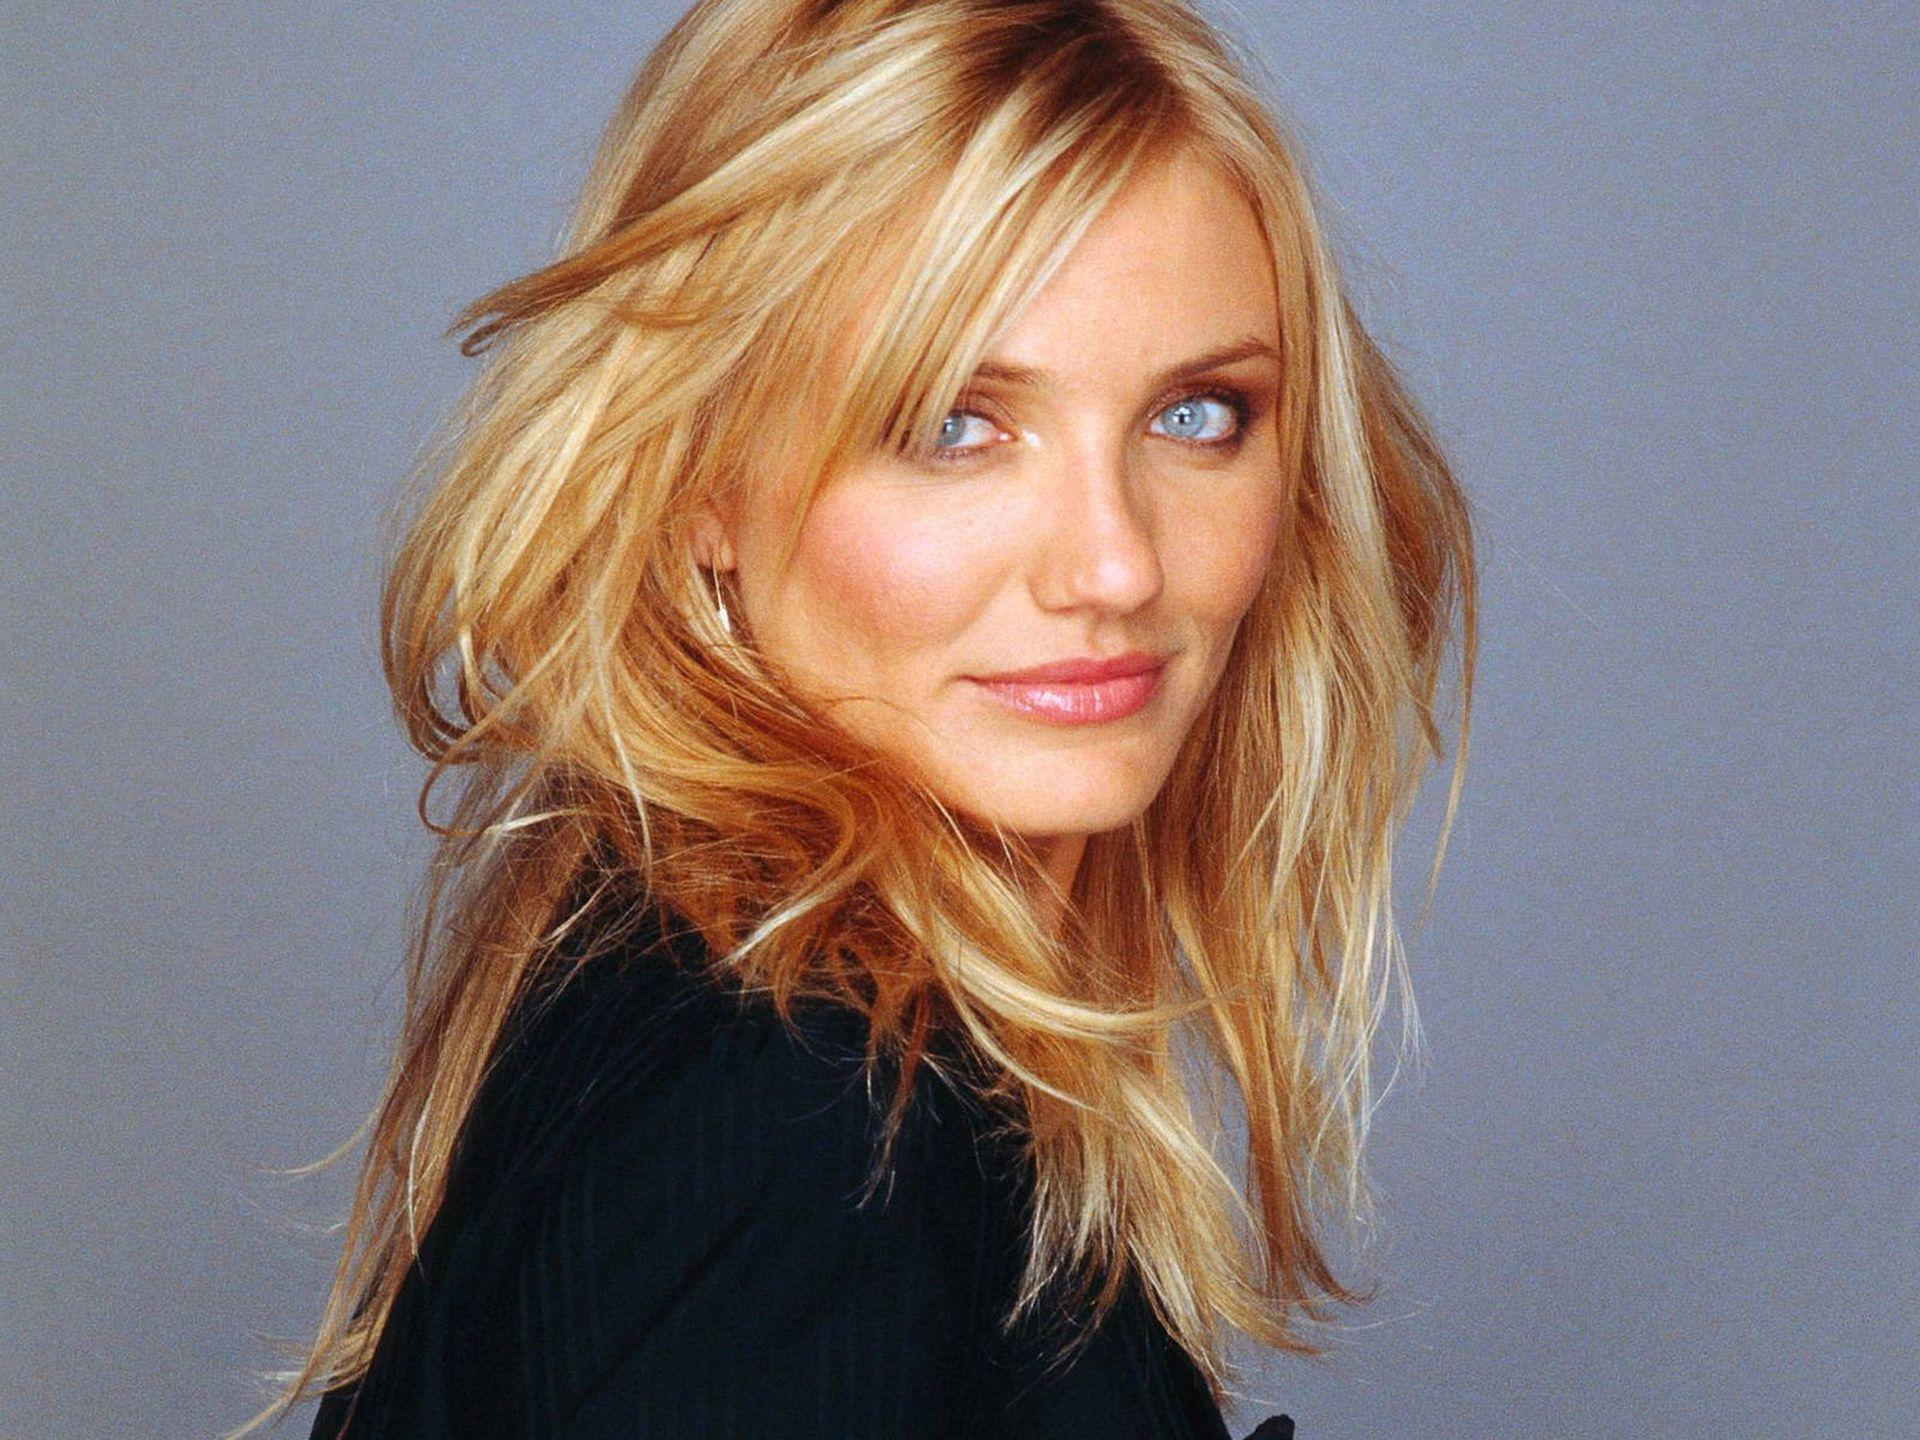 3807_cameron_diaz.jpg (1920×1440) | Actress Headshots | Pinterest ...